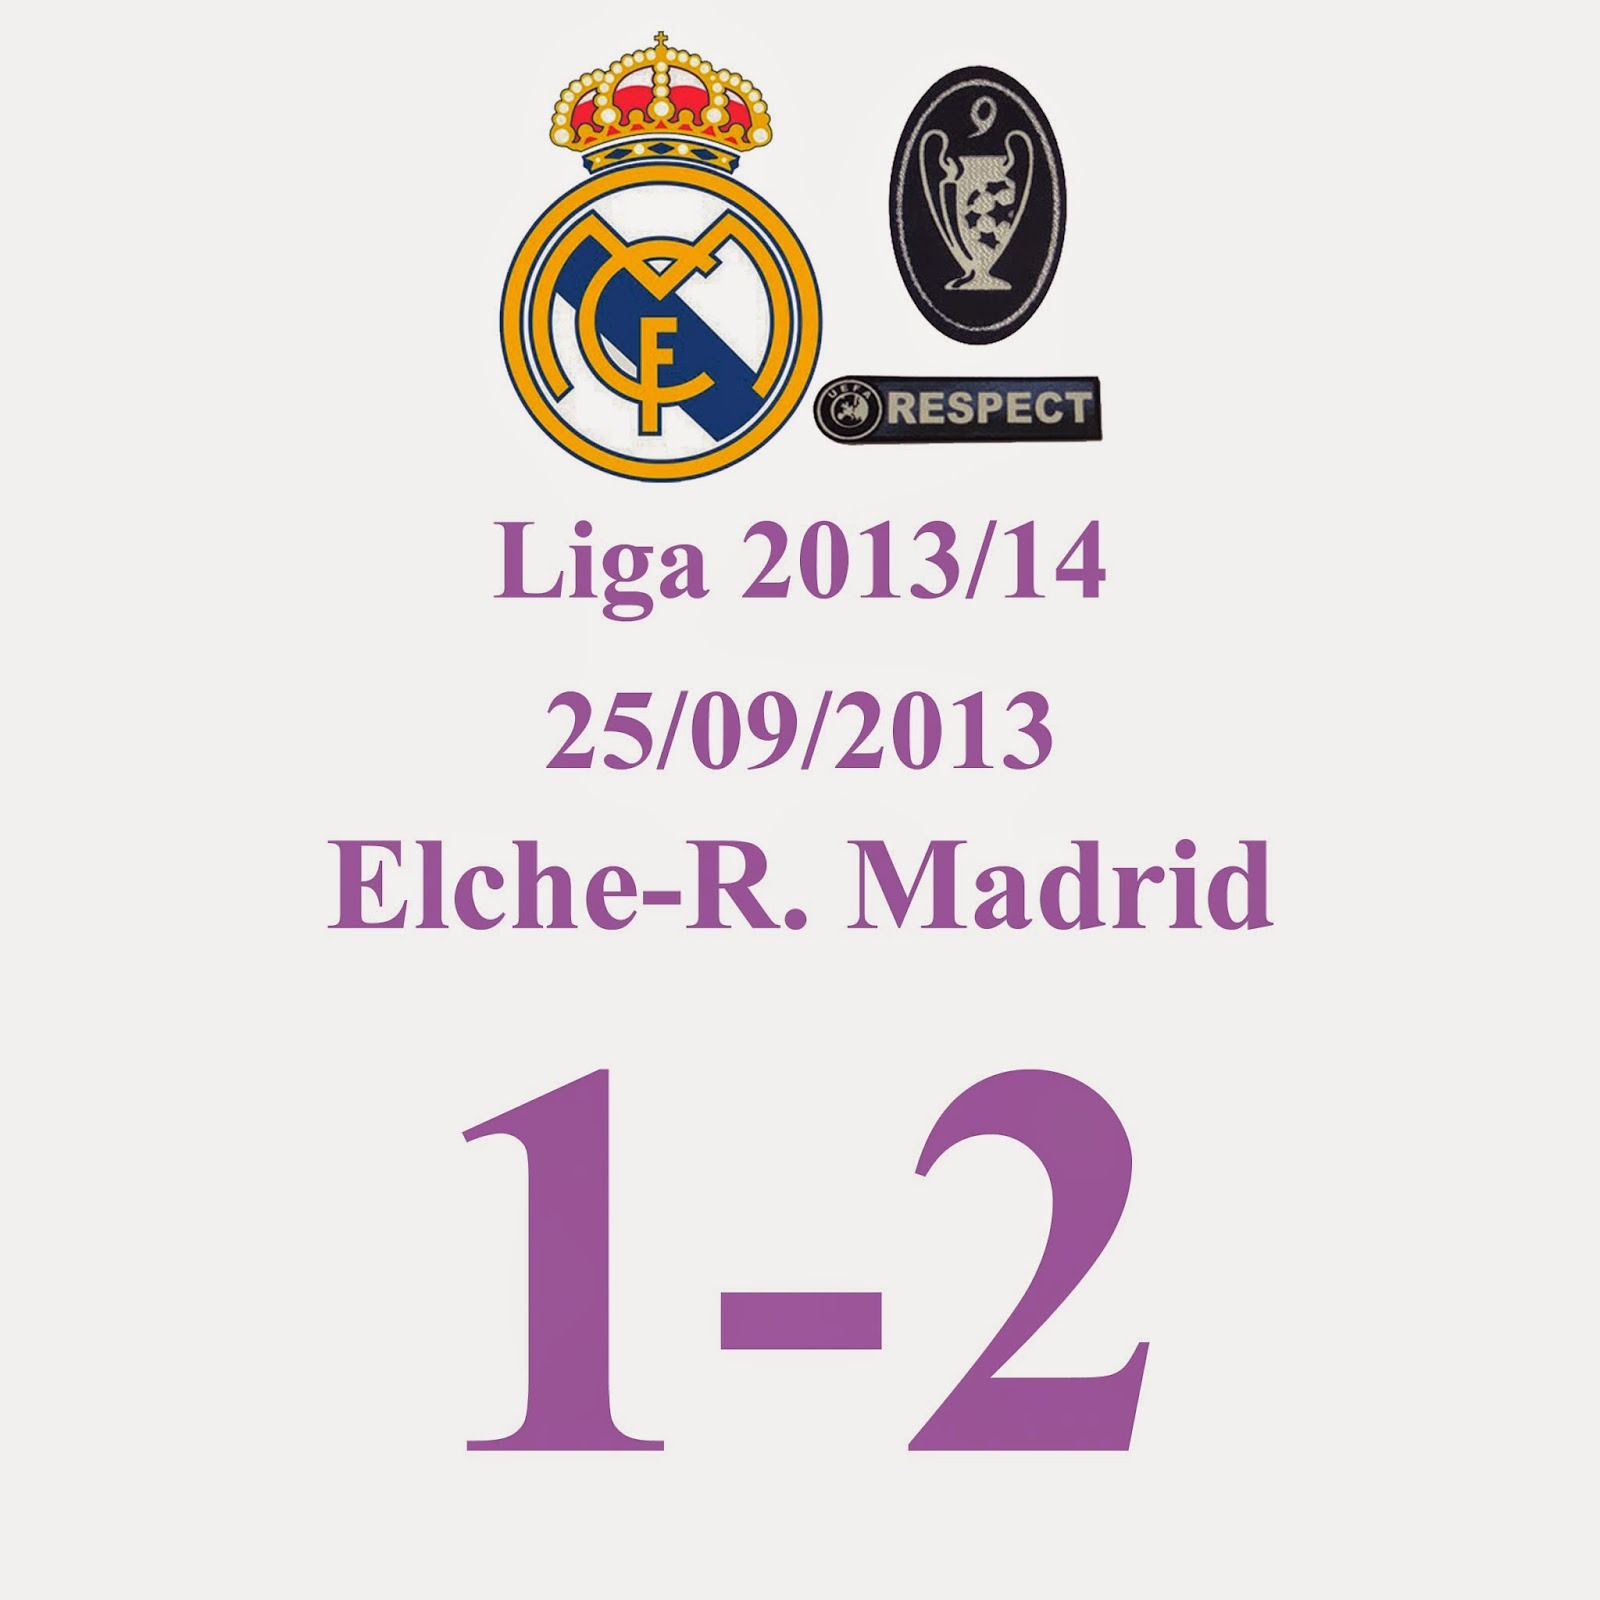 Real Madrid 4 - Copenhague 0 (2/9/2013) - 2 GOLAZOS DE C. RONALDO Y 2 GOLAZOS DE DI MARIA - Chamipons League 13/14